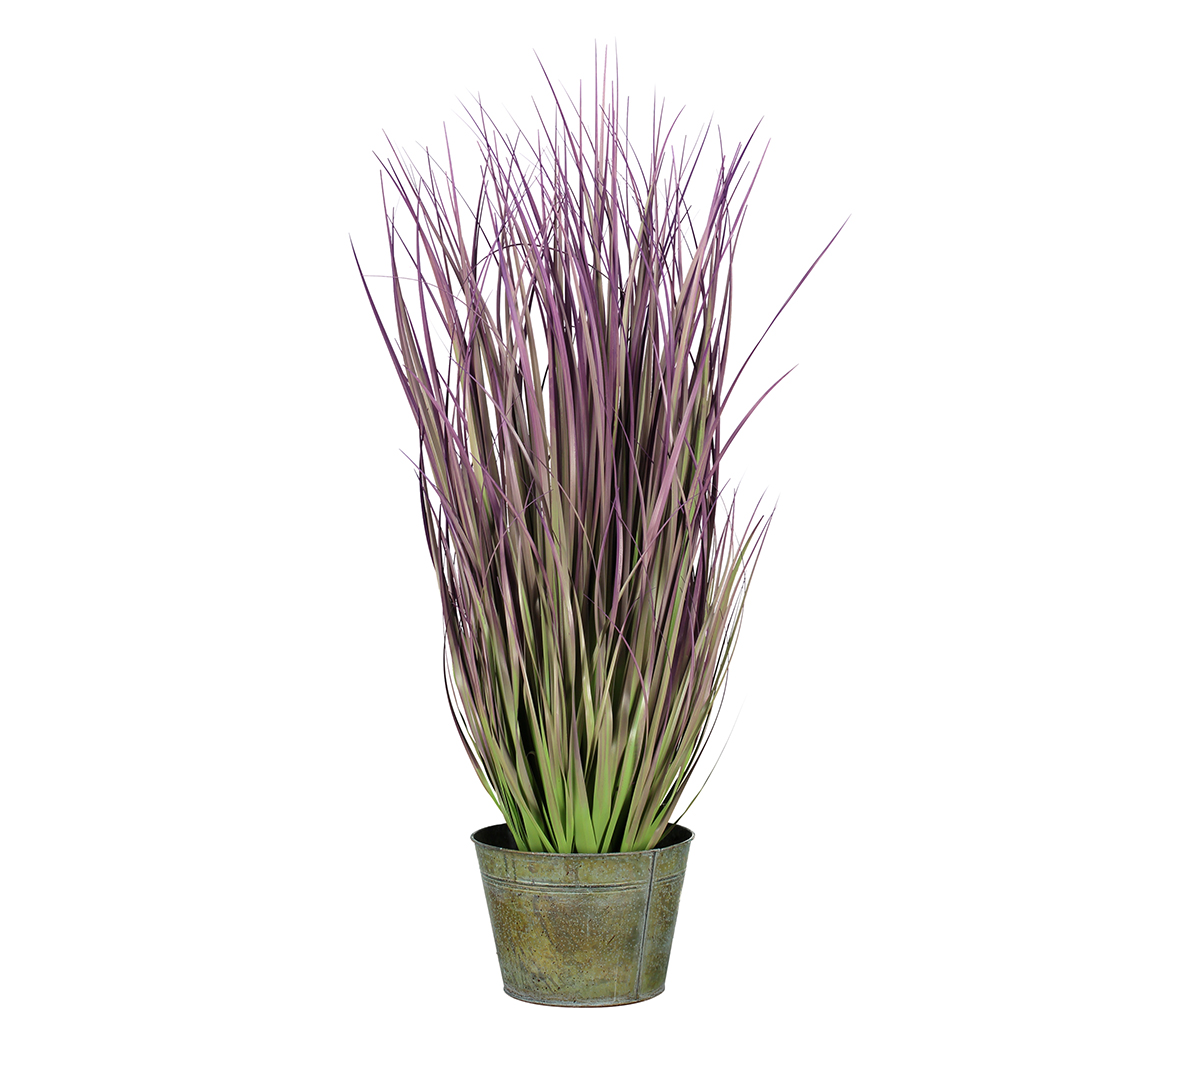 LS Artificial Grass With Metal Pot 42in